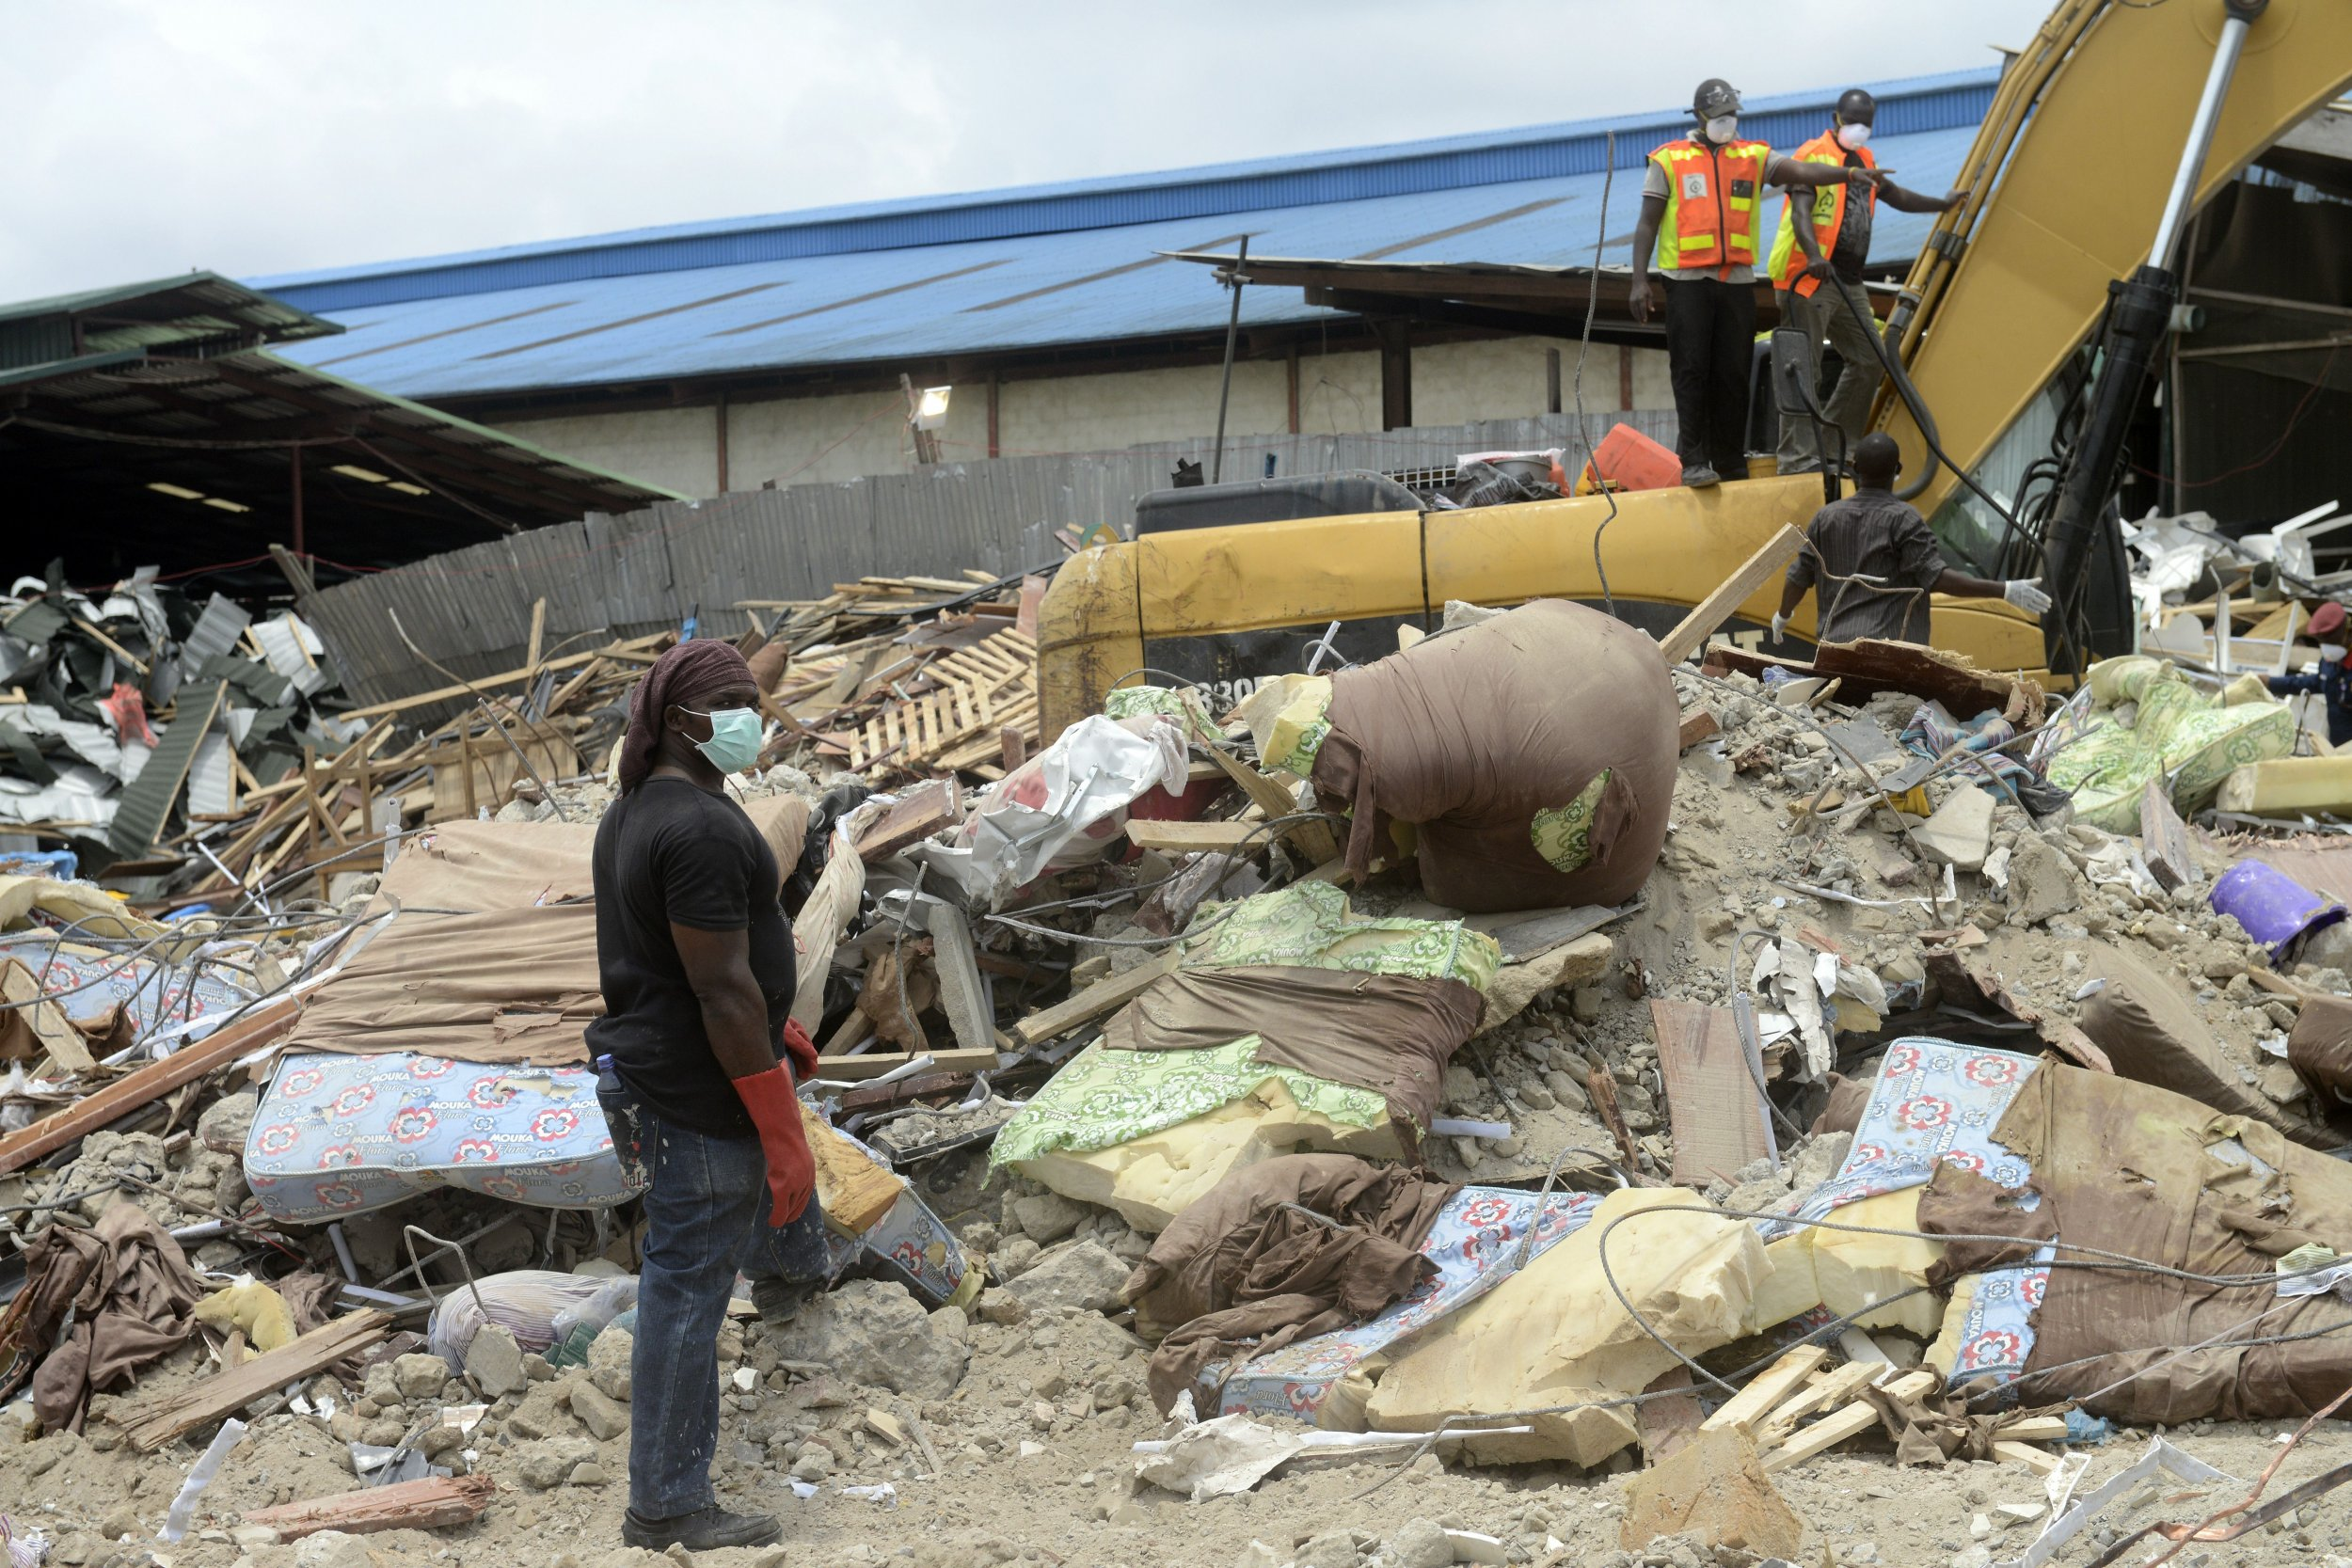 Rescue workers clear rubble from a collapsed church owned by TB Joshua's church in Lagos.